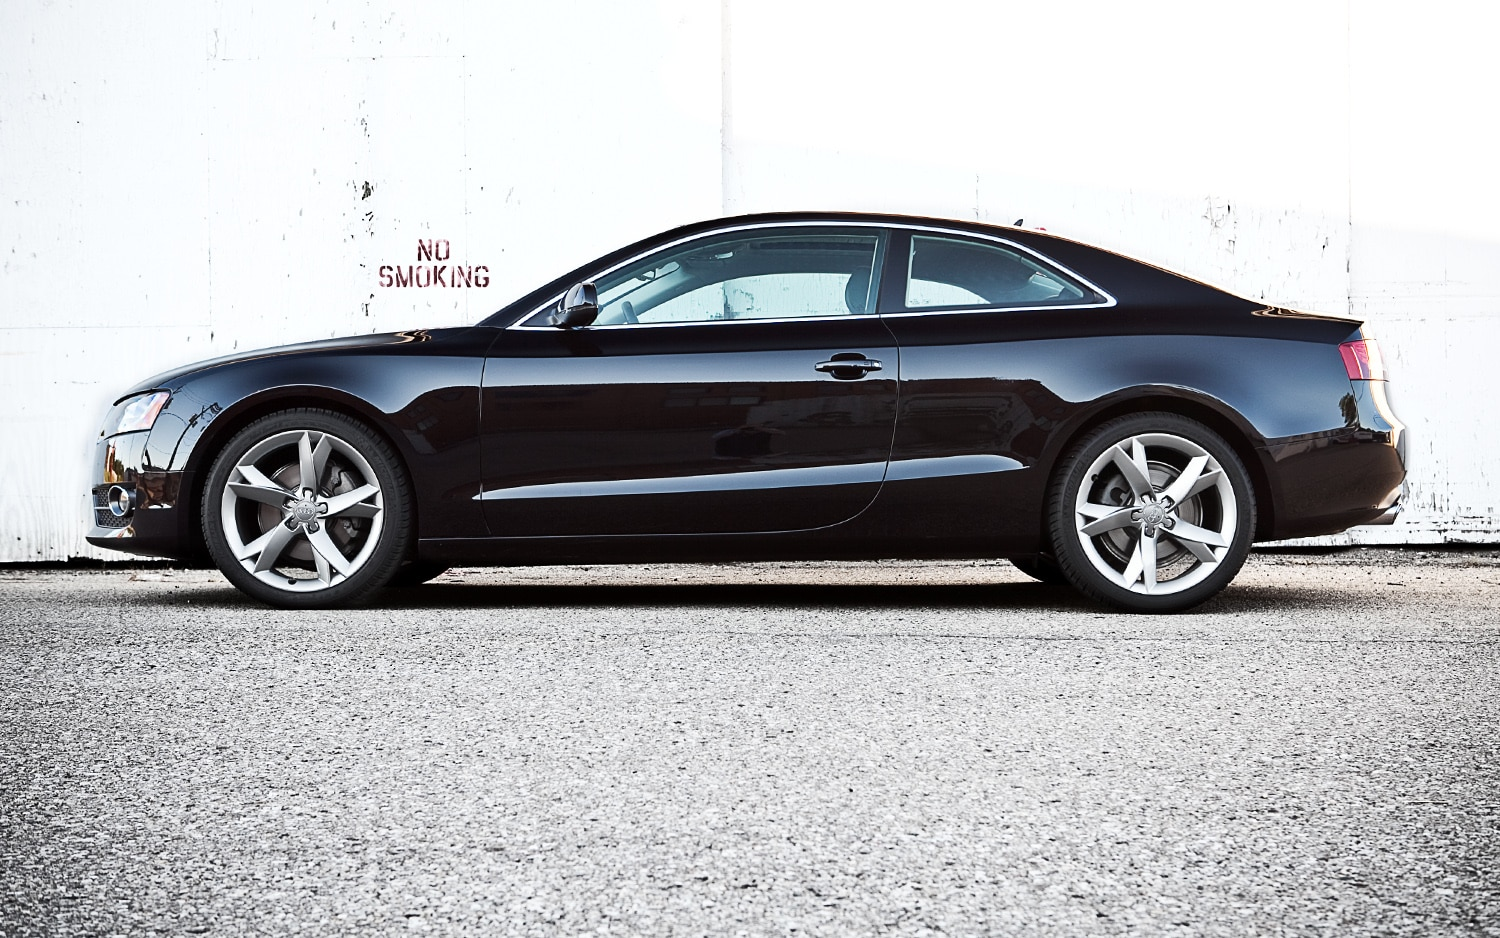 2011 Audi A5 2.0 TFSI Quattro Coupe - Editors' Notebook - Automobile Magazine